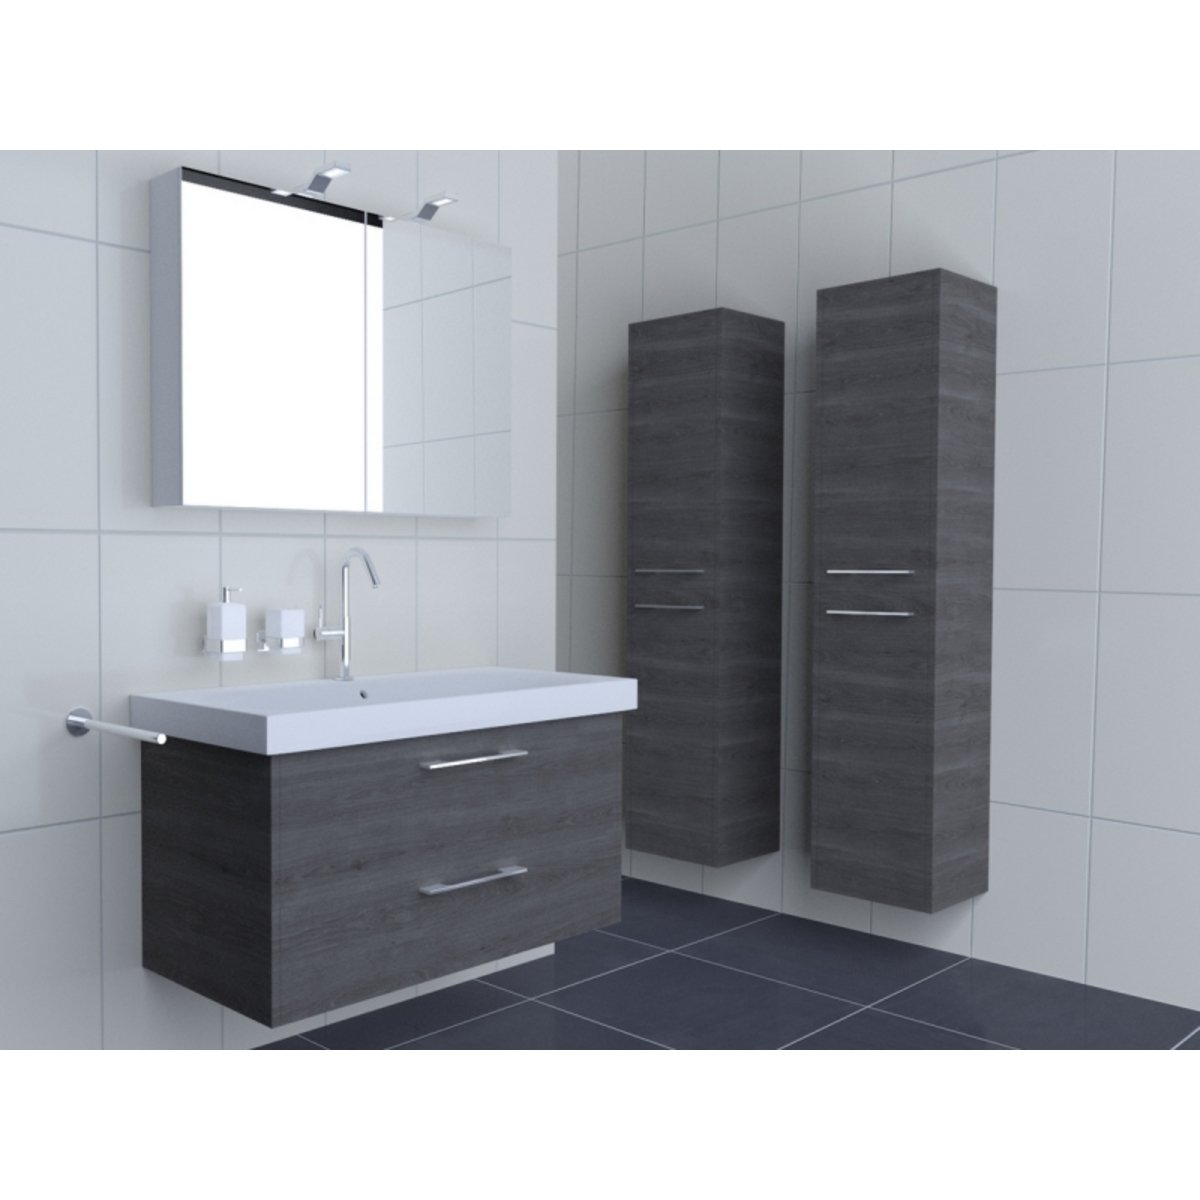 royal plaza kalaoa meuble sous lavabo 105x52cm avec 2 tiroirs ch ne gris 18929. Black Bedroom Furniture Sets. Home Design Ideas